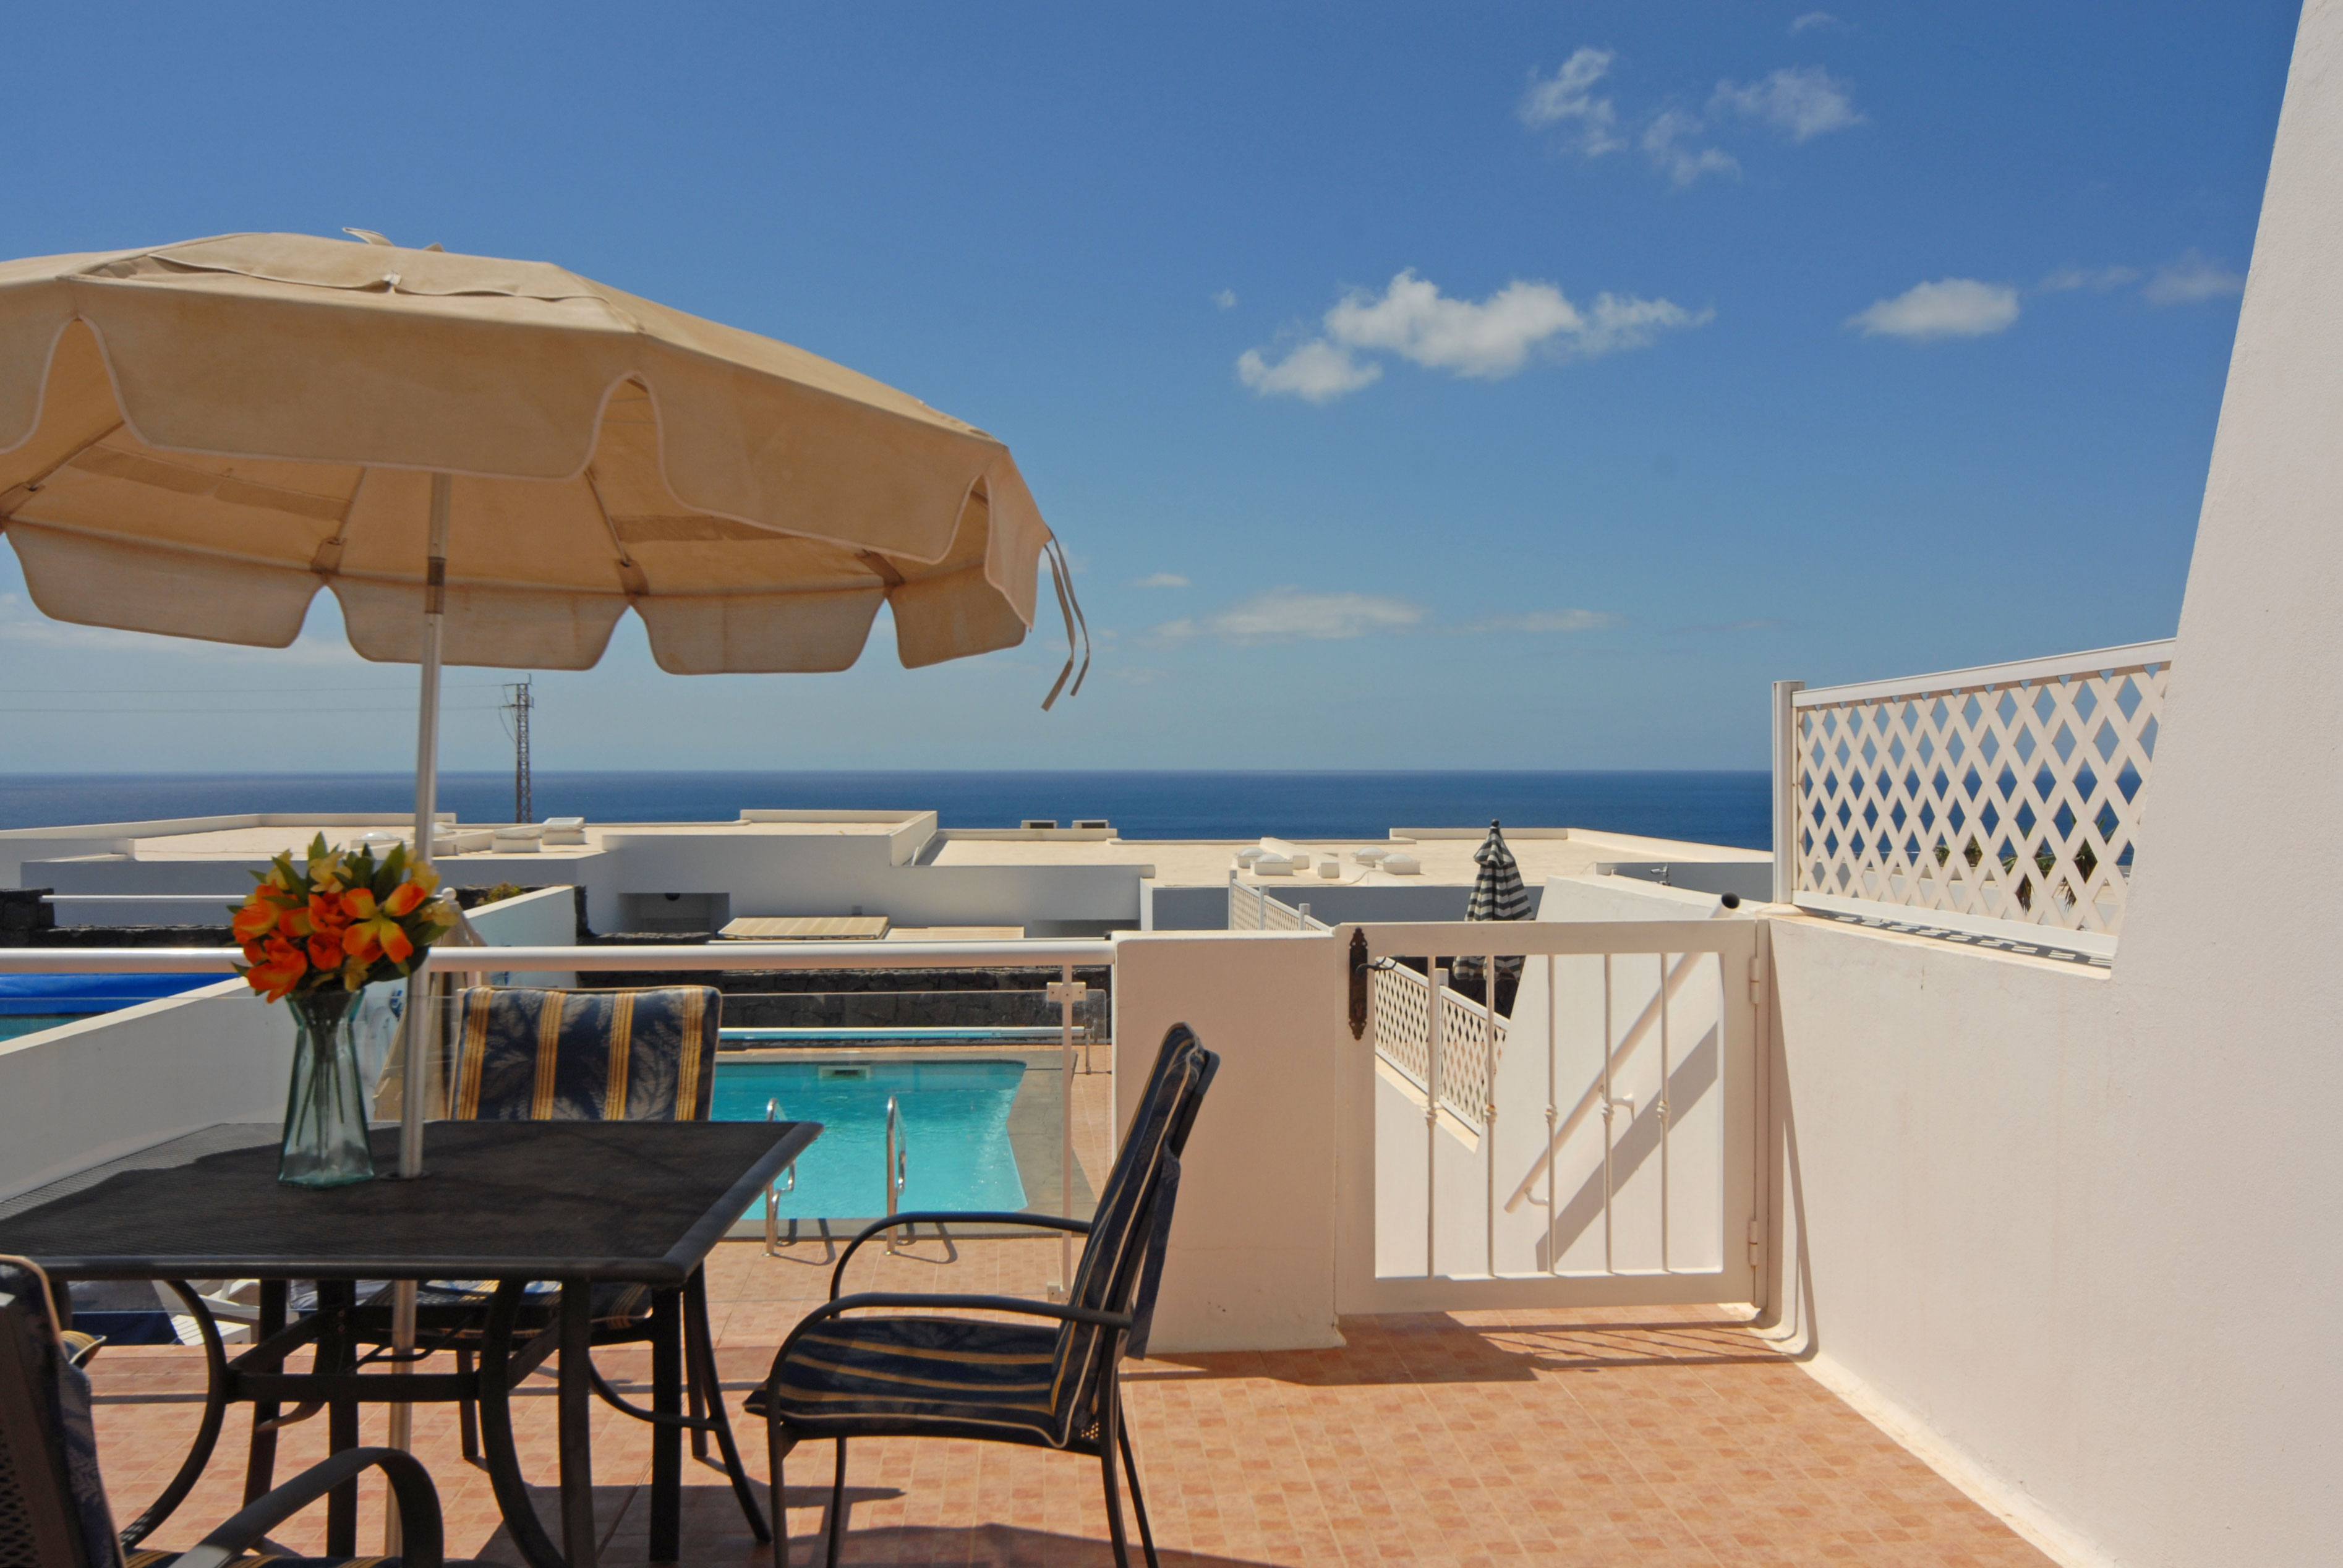 Puerto del Carmen Holiday Villa with views from the terrace